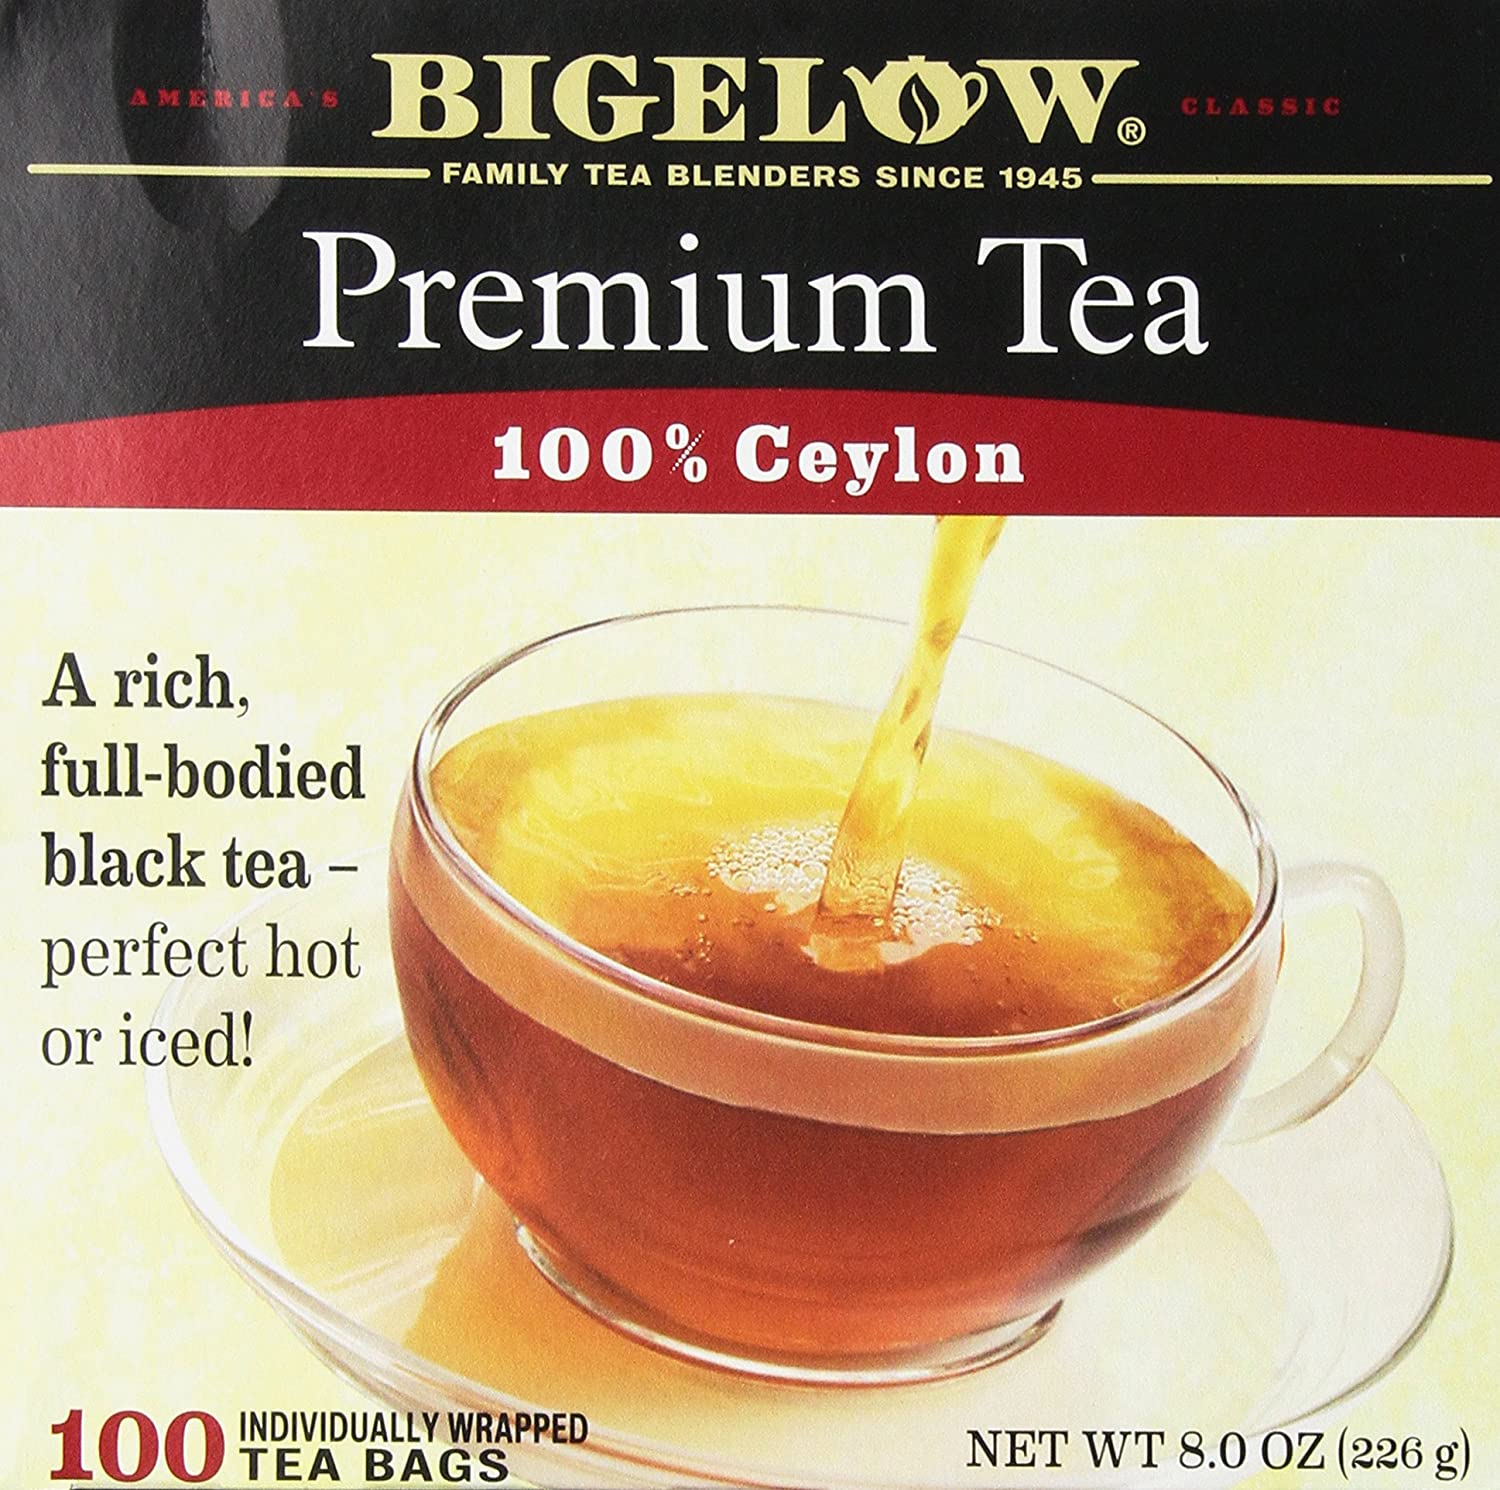 Bigelow 100 Count Premium Blend Black Tea, Contains 100 Individually Wrapped Tea Bags